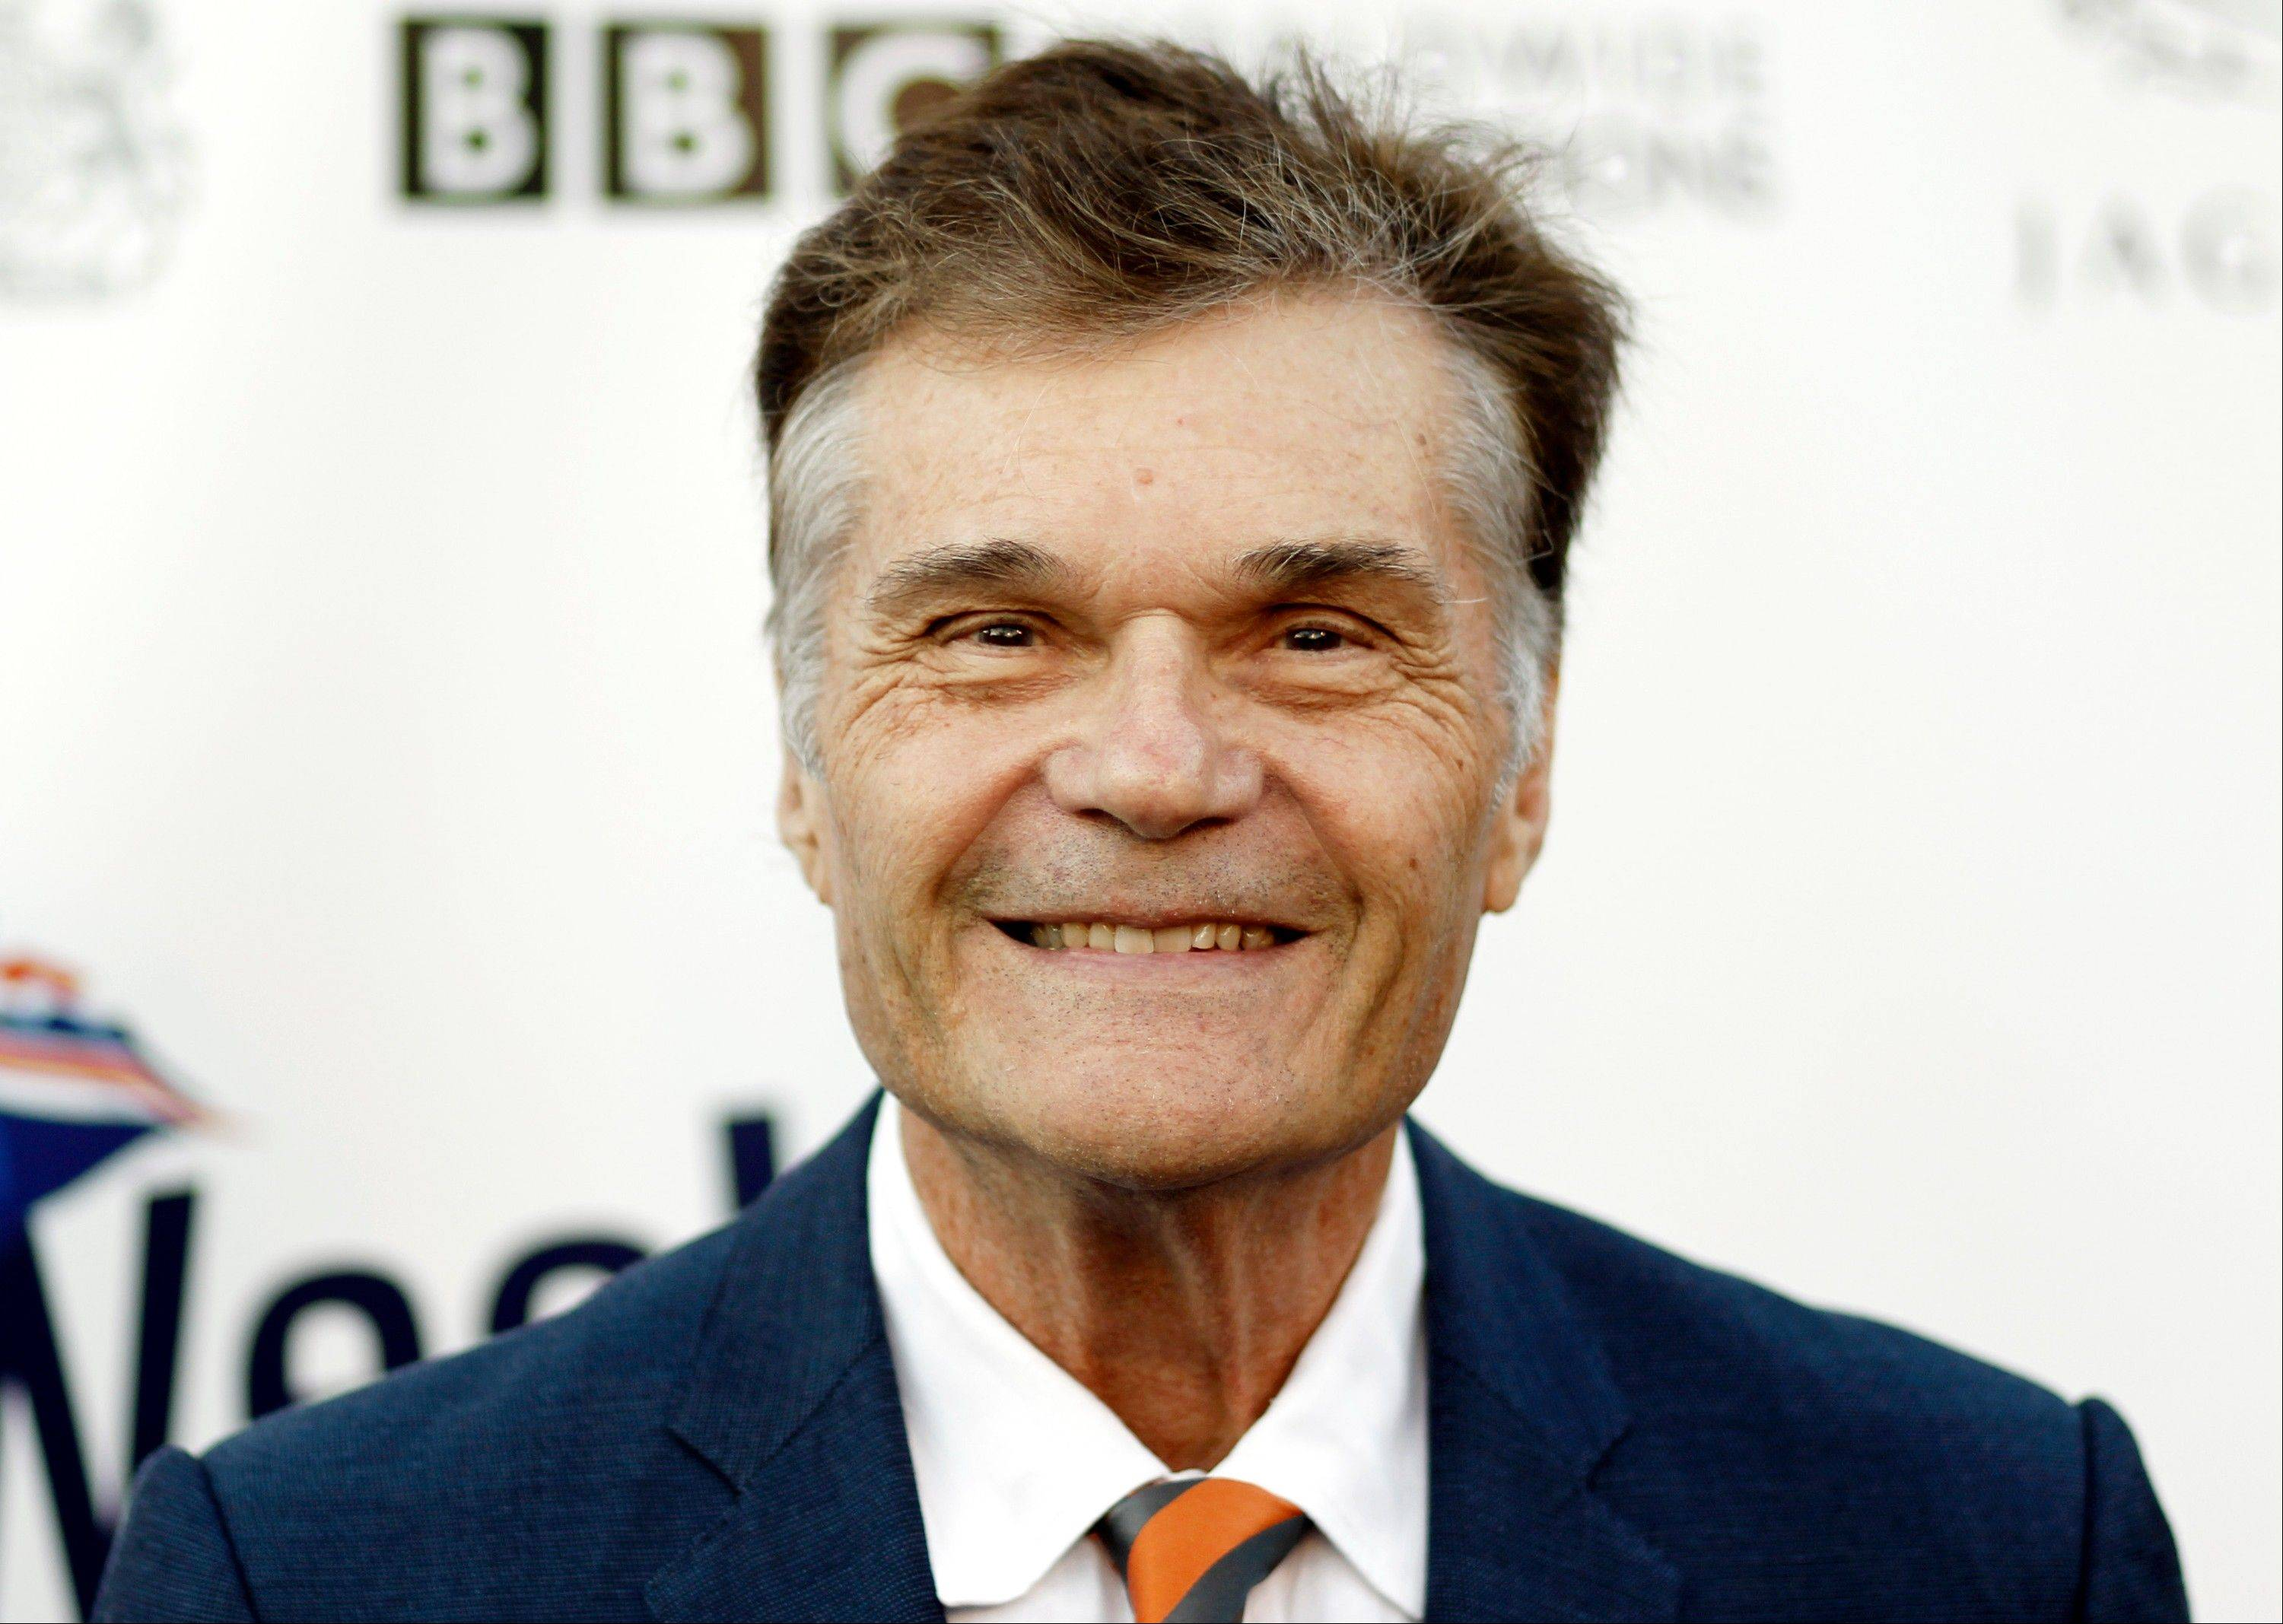 "Actor Fred Willard, who starred in such films as ""Best in Show"" and ""Anchorman: The Legend of Ron Burgundy,"" was arrested in a Hollywood theater July 18 on suspicion of engaging in a lewd act, police said Wednesday."